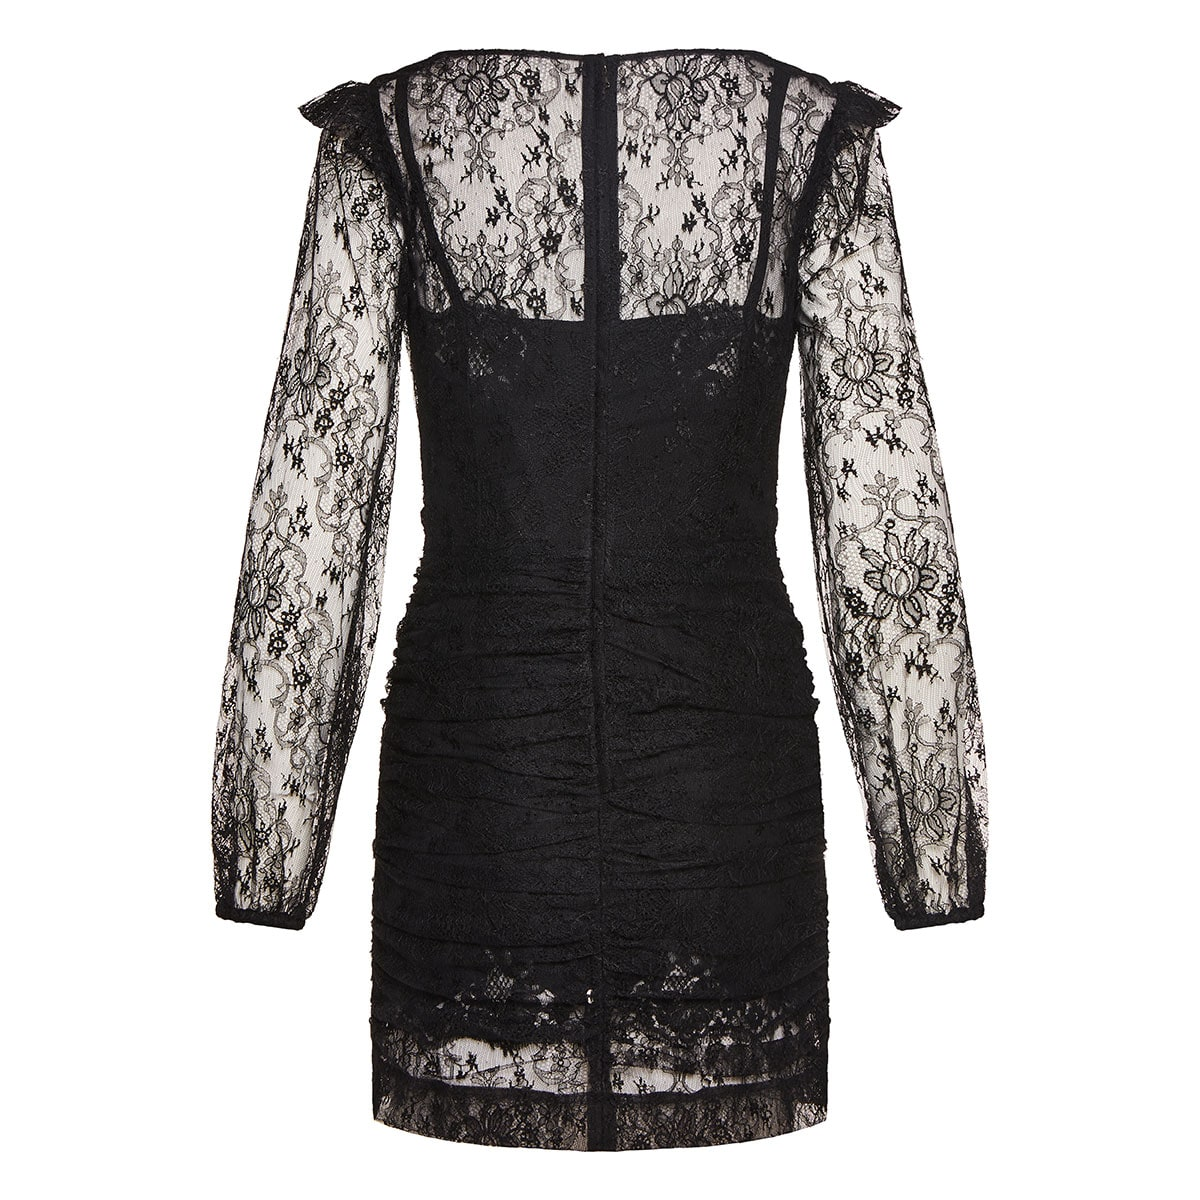 Ruched lace mini dress